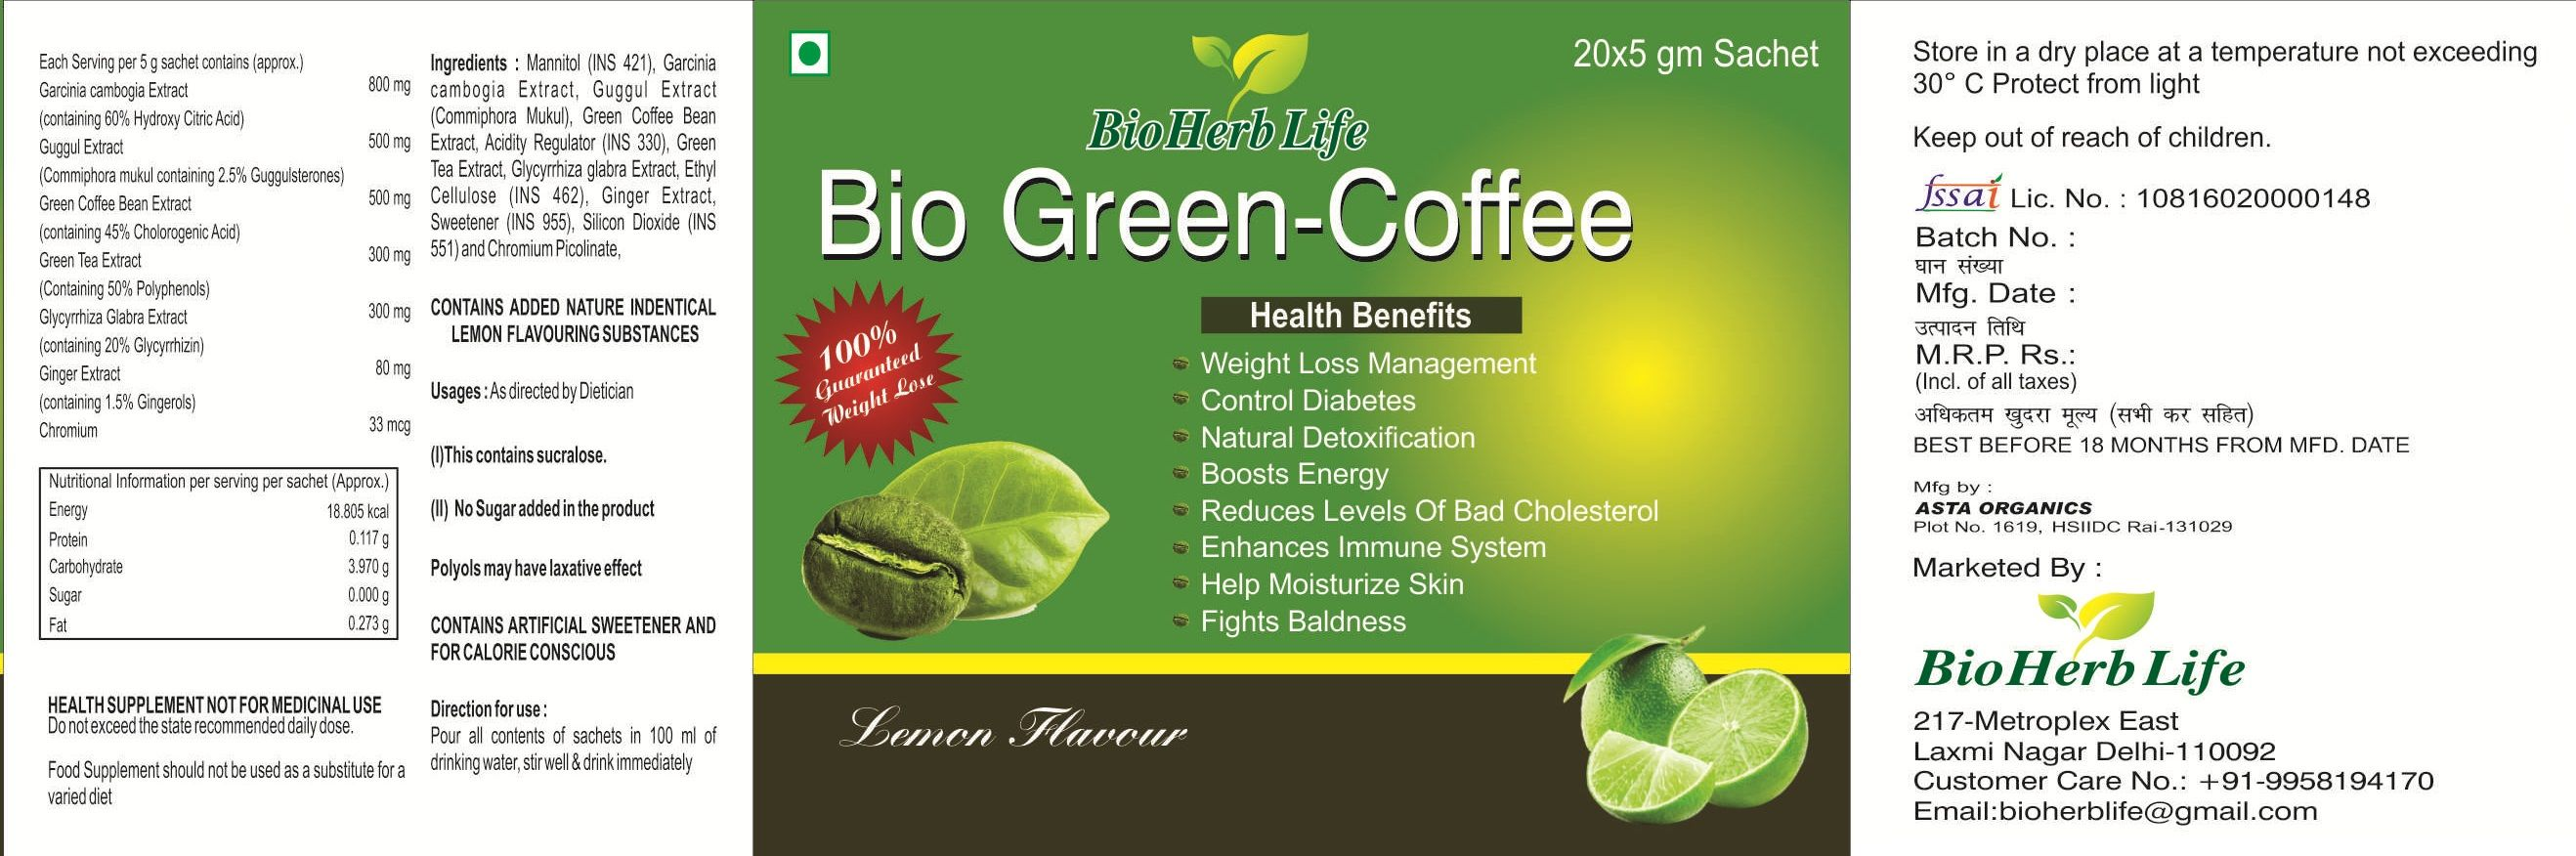 Care exporter health herbal product - Ayurvedic Herbal Products Manufacturers In Delhi Bio Herb Life Pvt Ltd Major Exporters Of Ayurvedic Herbal Products In Delhi Ayurvedic Herbal Bio Green